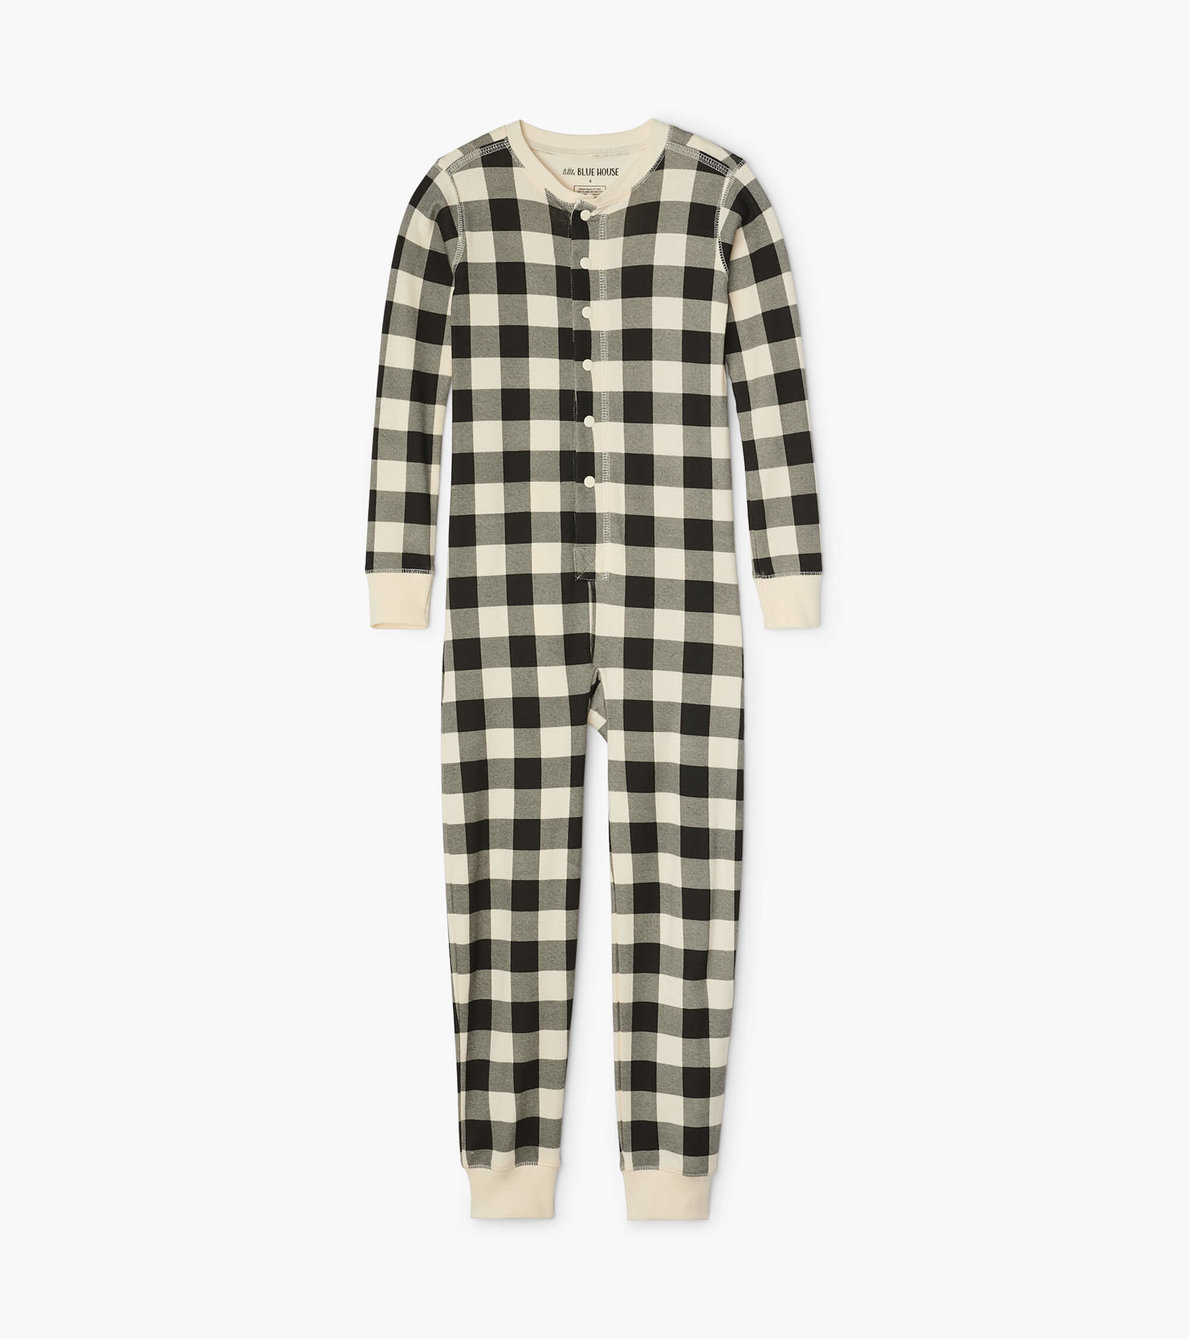 View larger image of Cream Plaid Kids Union Suit